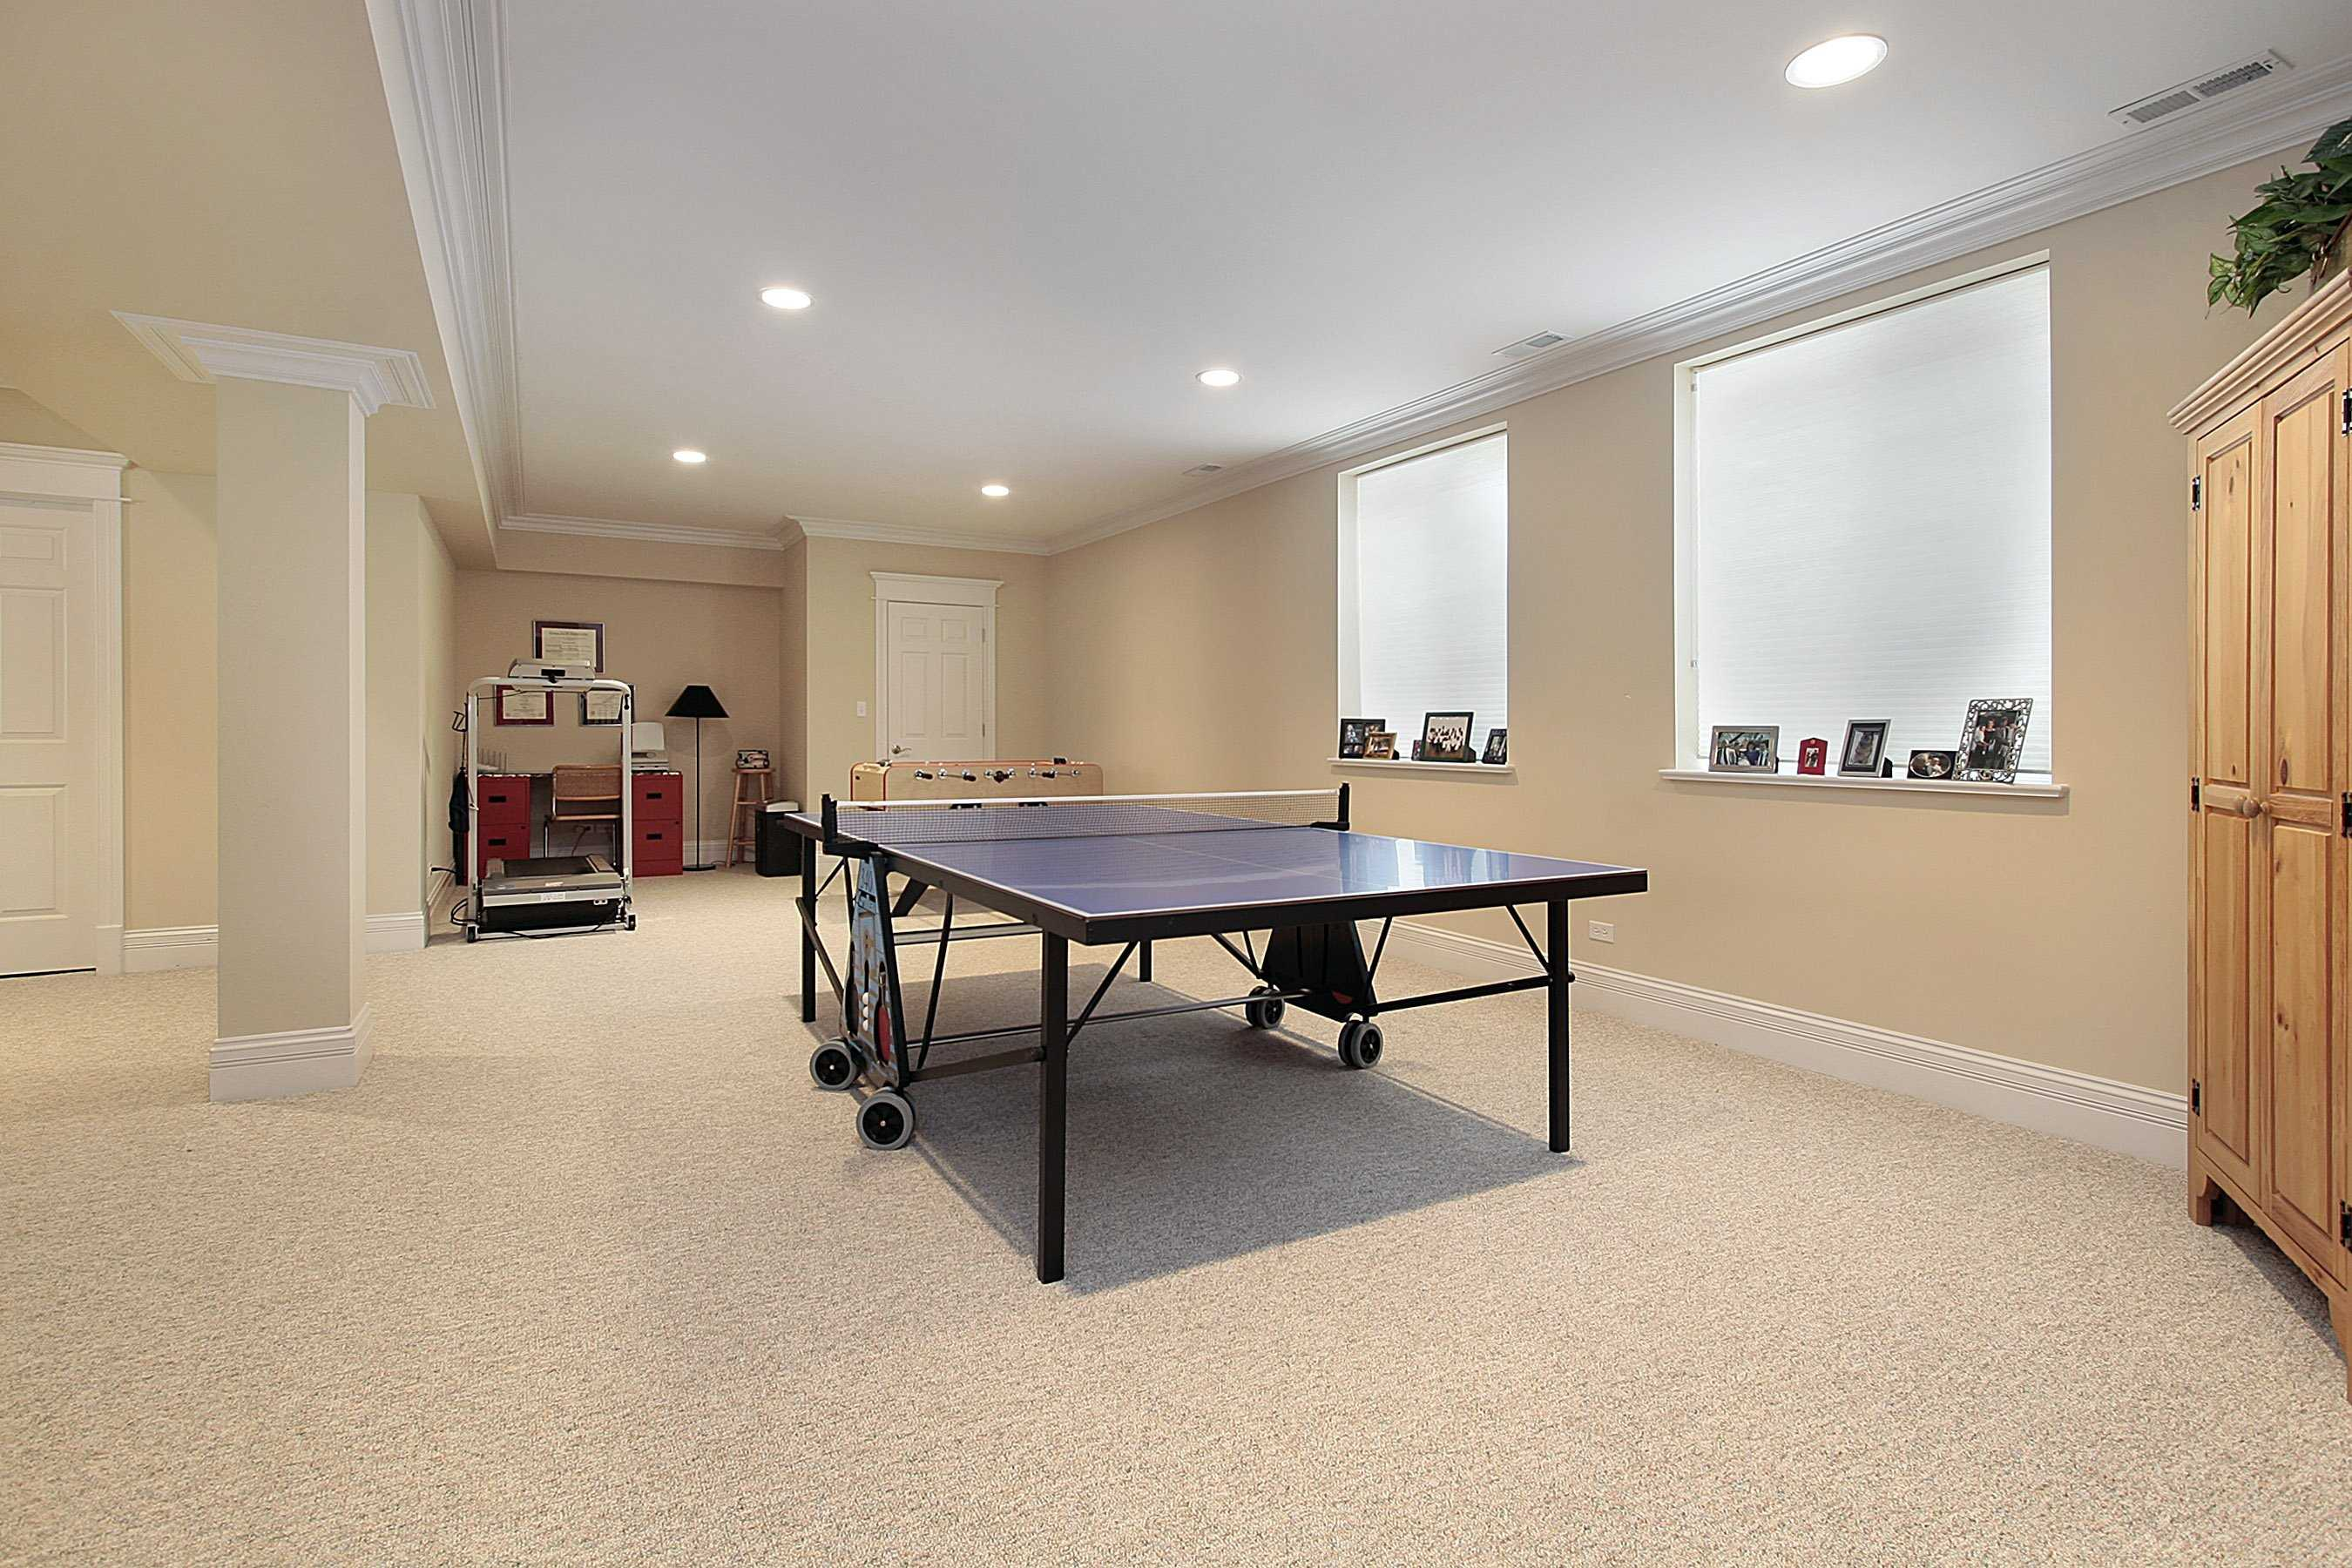 Game Room Basement Remodel 3 Interior Design Ideas